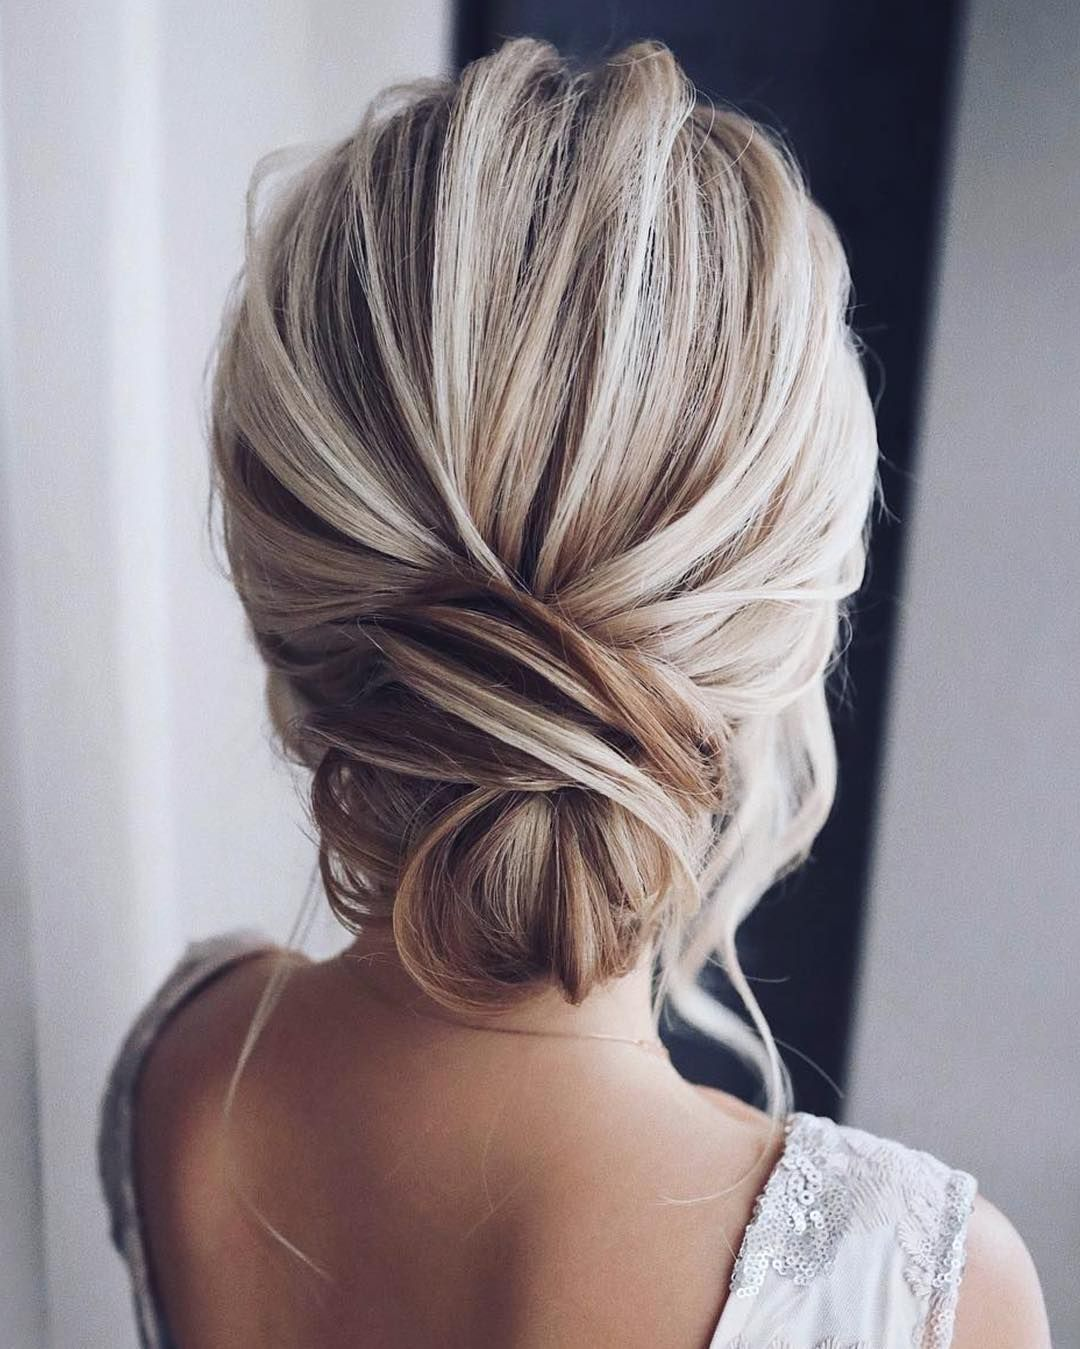 123456789 Or 10 Follow Us Credit Braidstyles